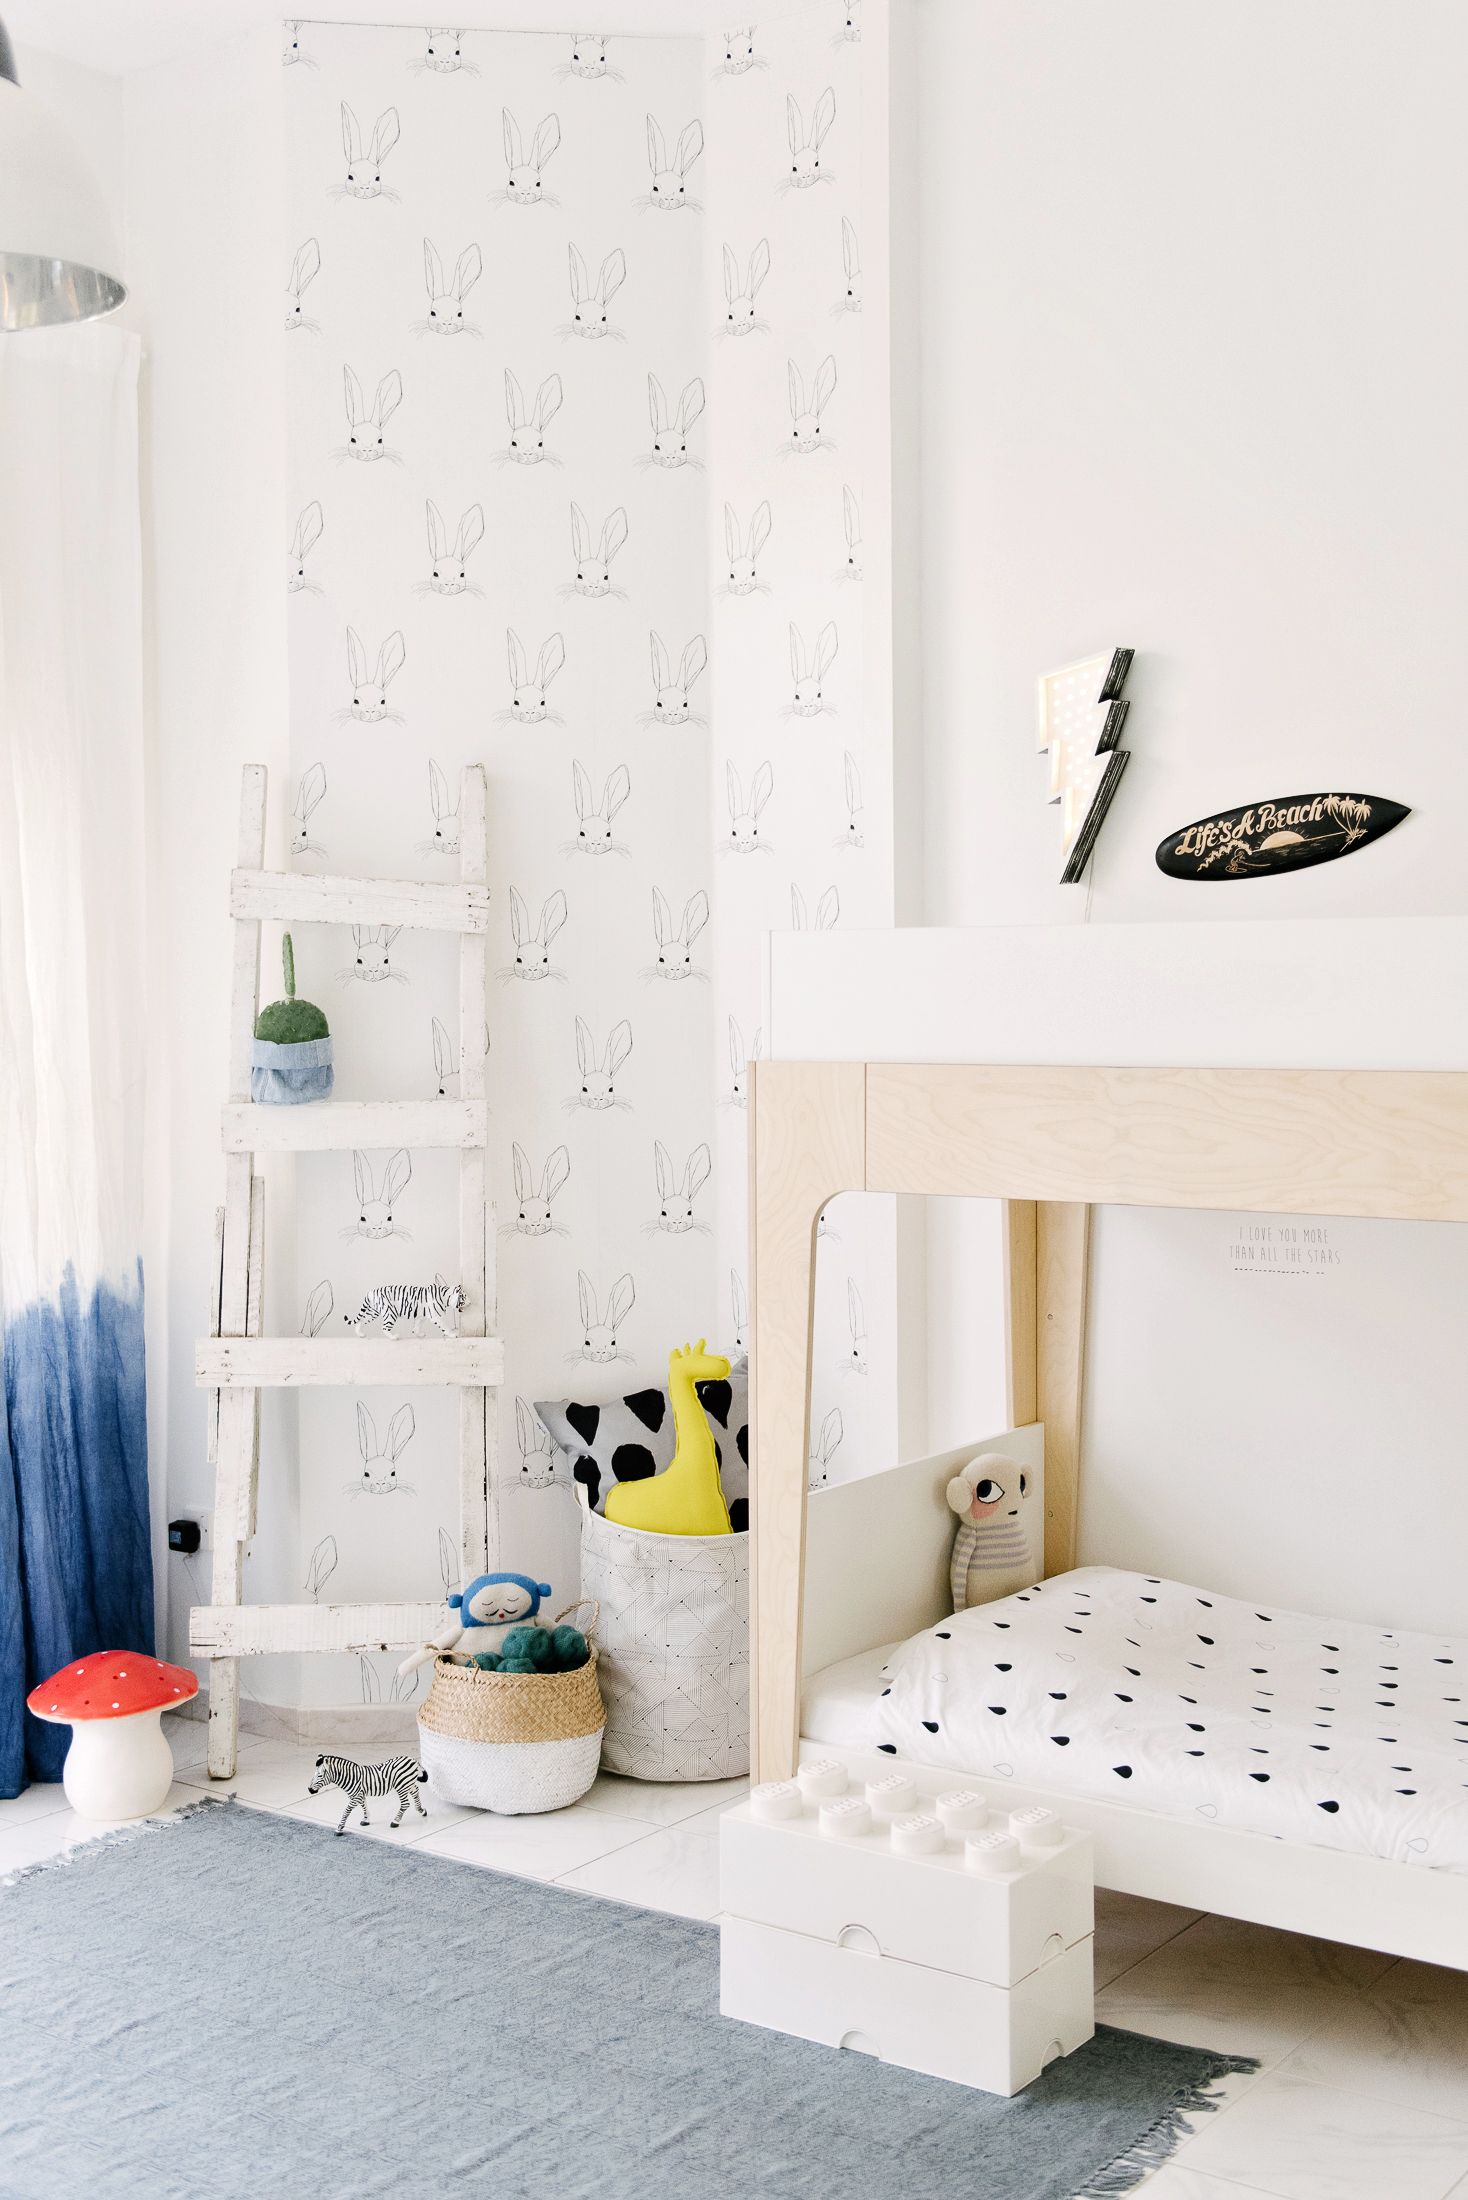 5 Minimal And Playful Wallpapers For A Kids Room Rosario  # Muebles Habia Una Vez Rosario